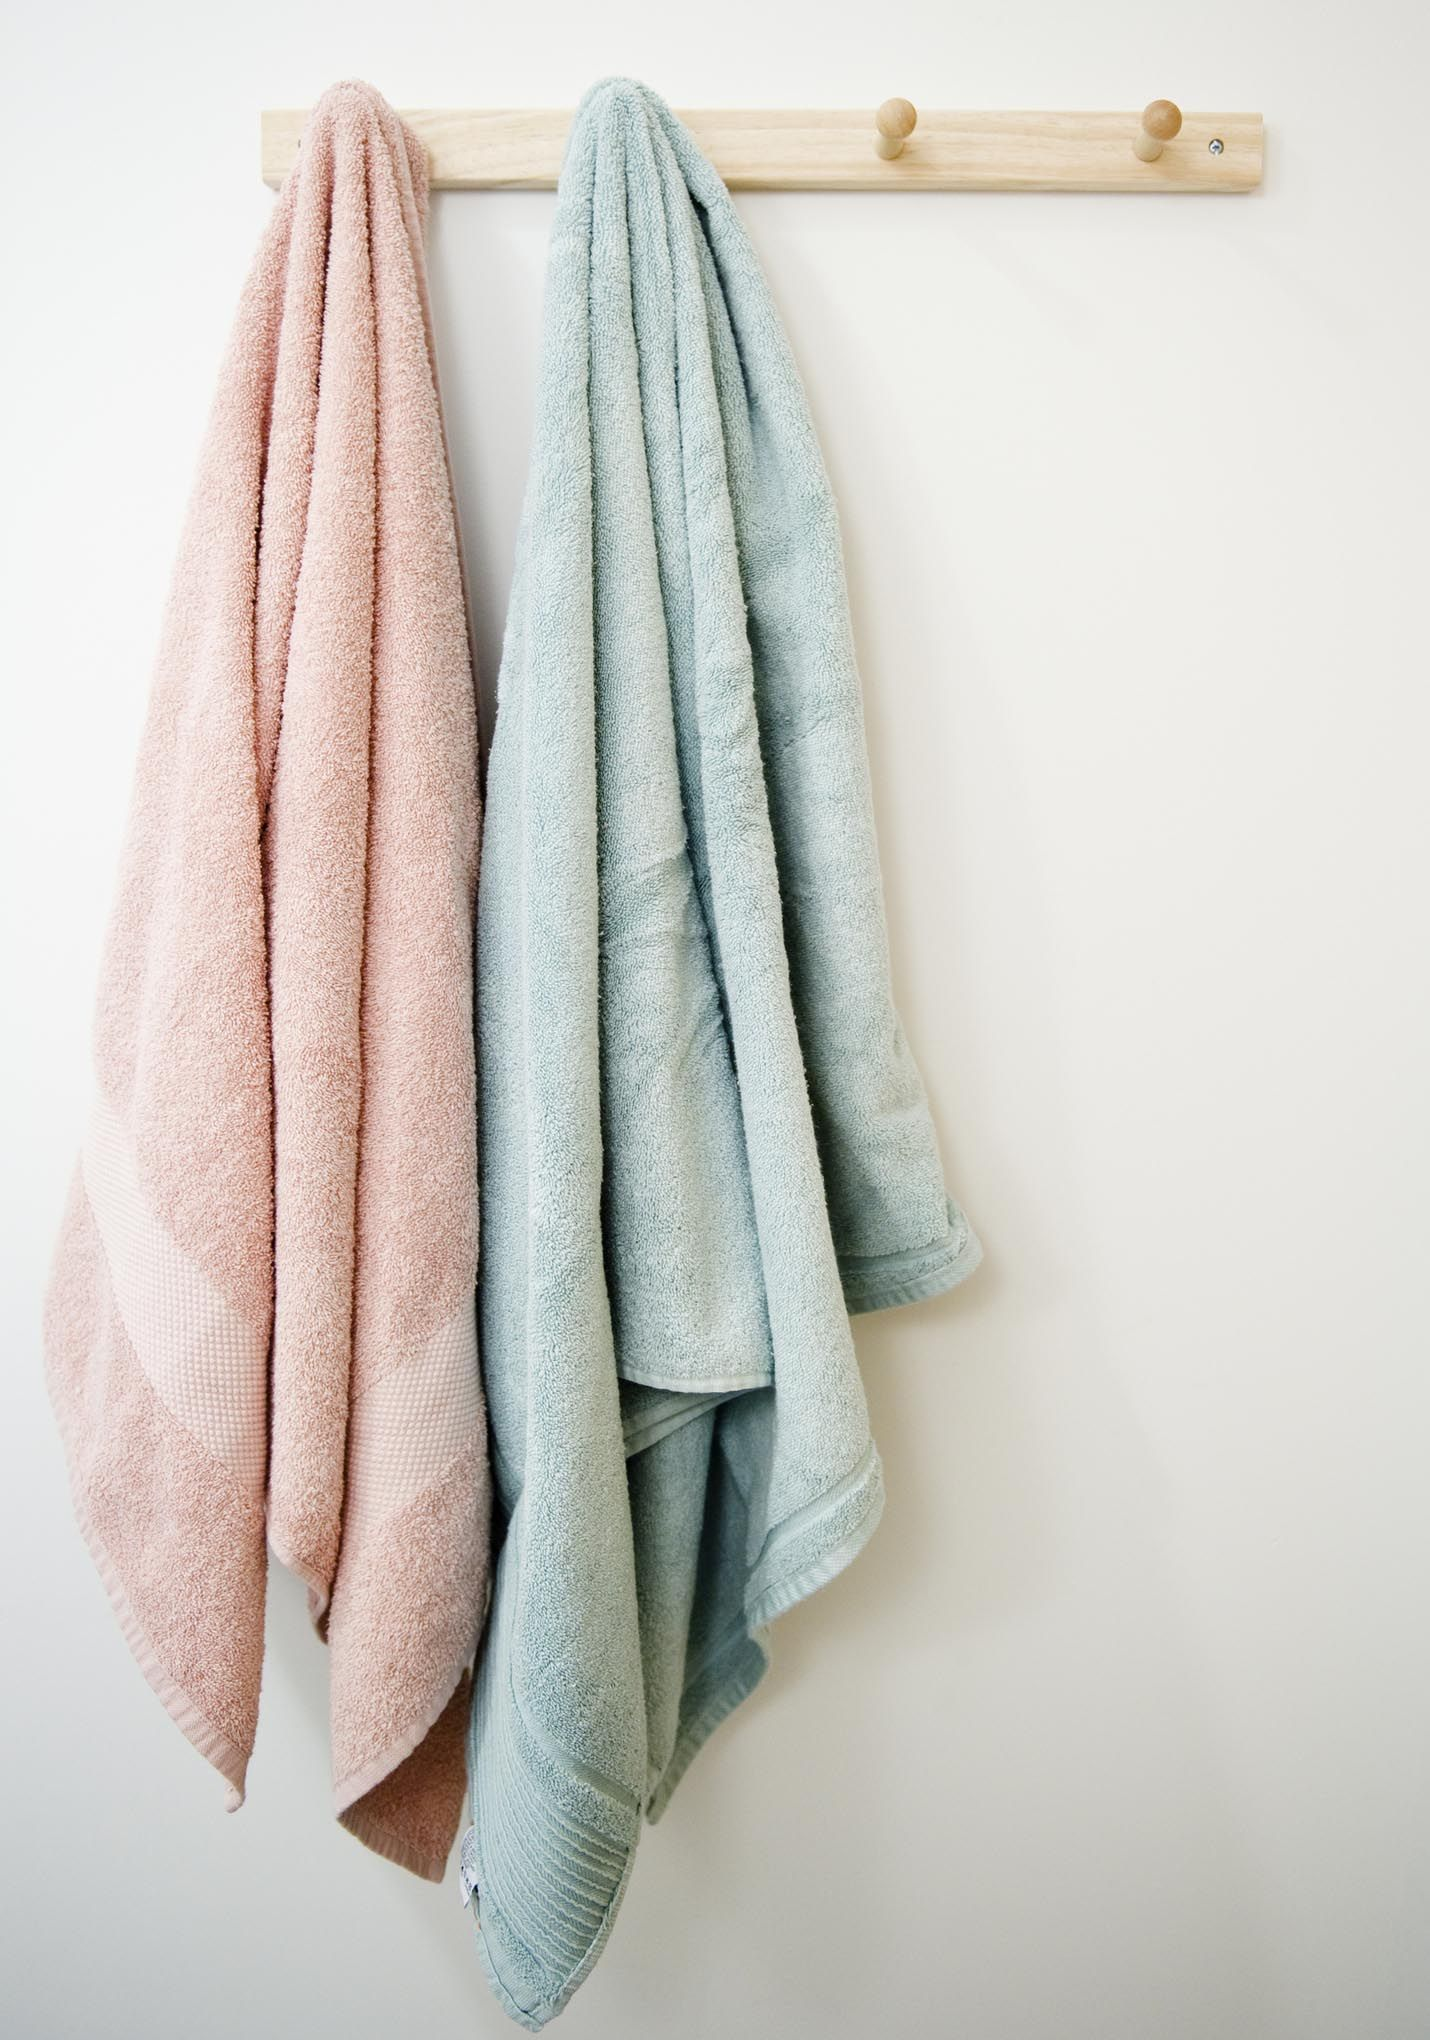 How Often Are You Supposed to Wash Your Towels